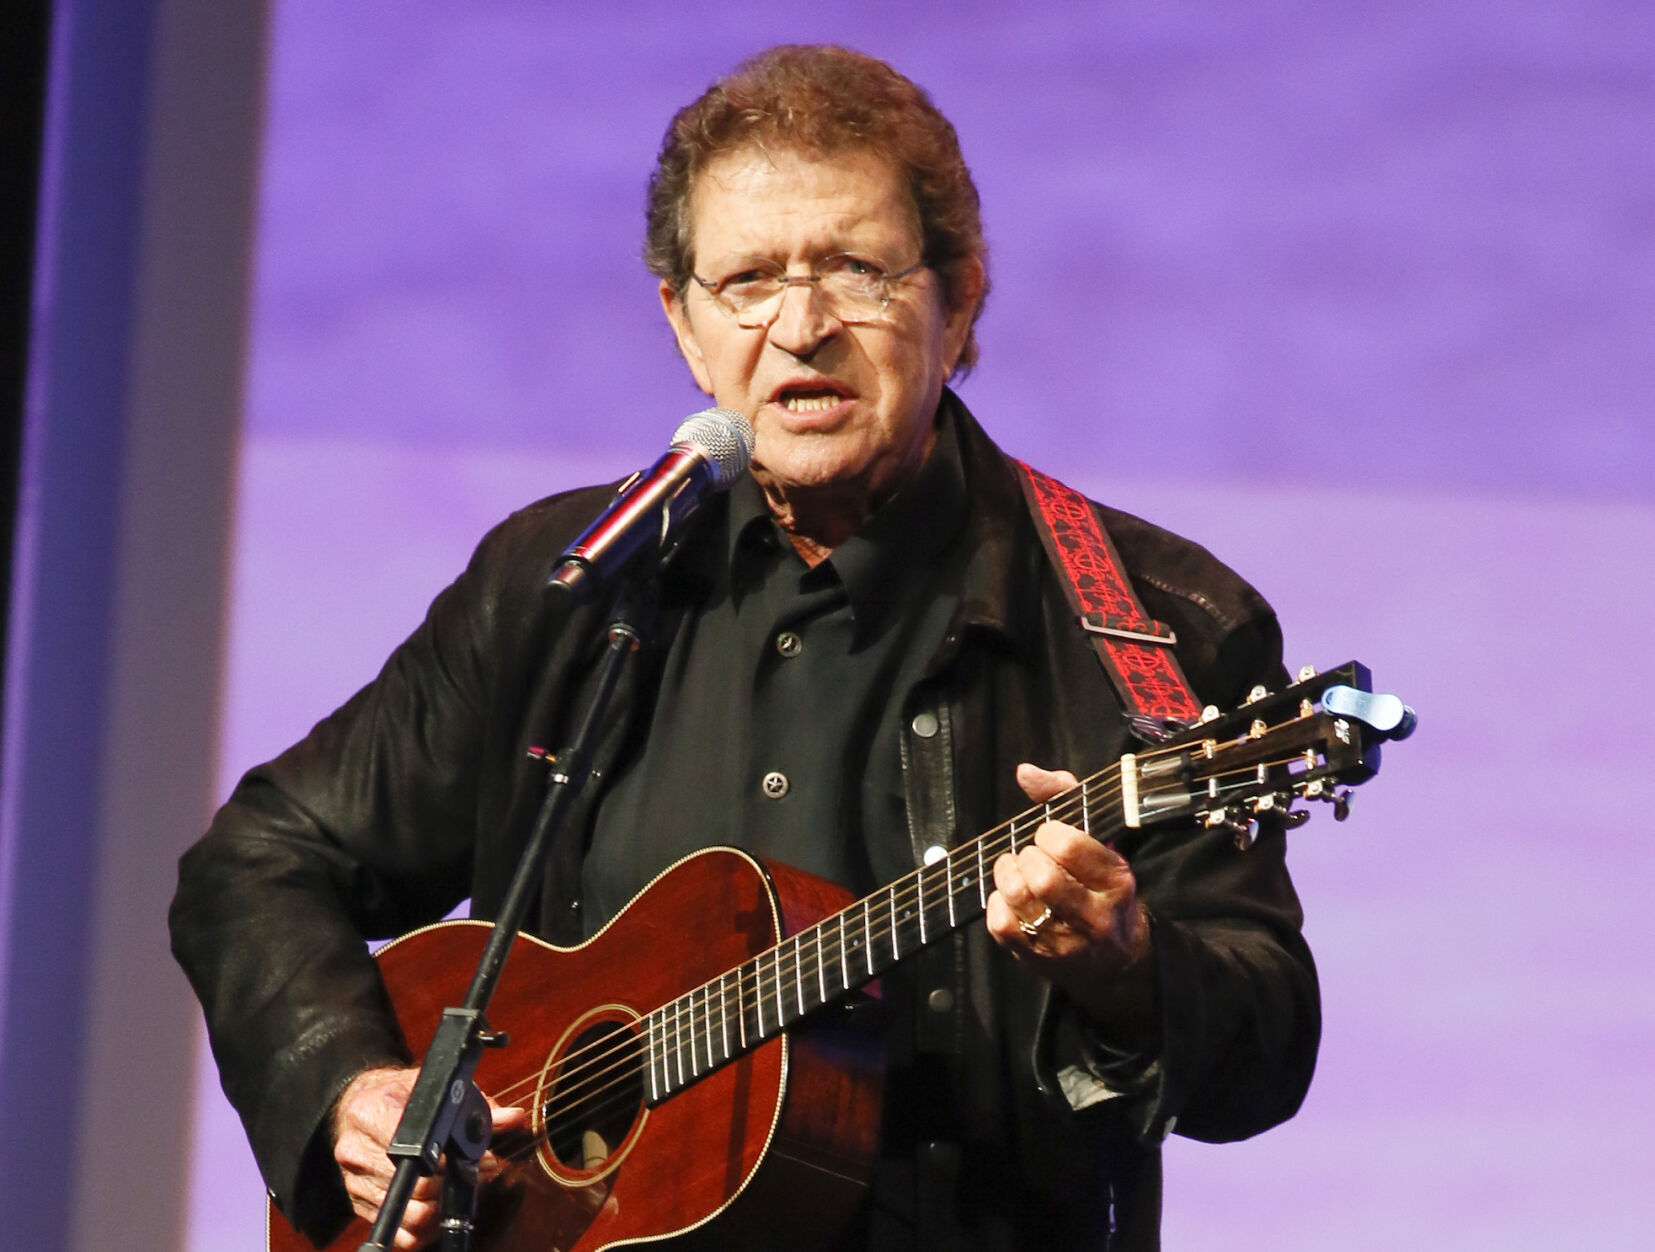 tulsaworld.com - Jimmie Tramel - Music artists remember singer, songwriter and actor Mac Davis, who died at age 78